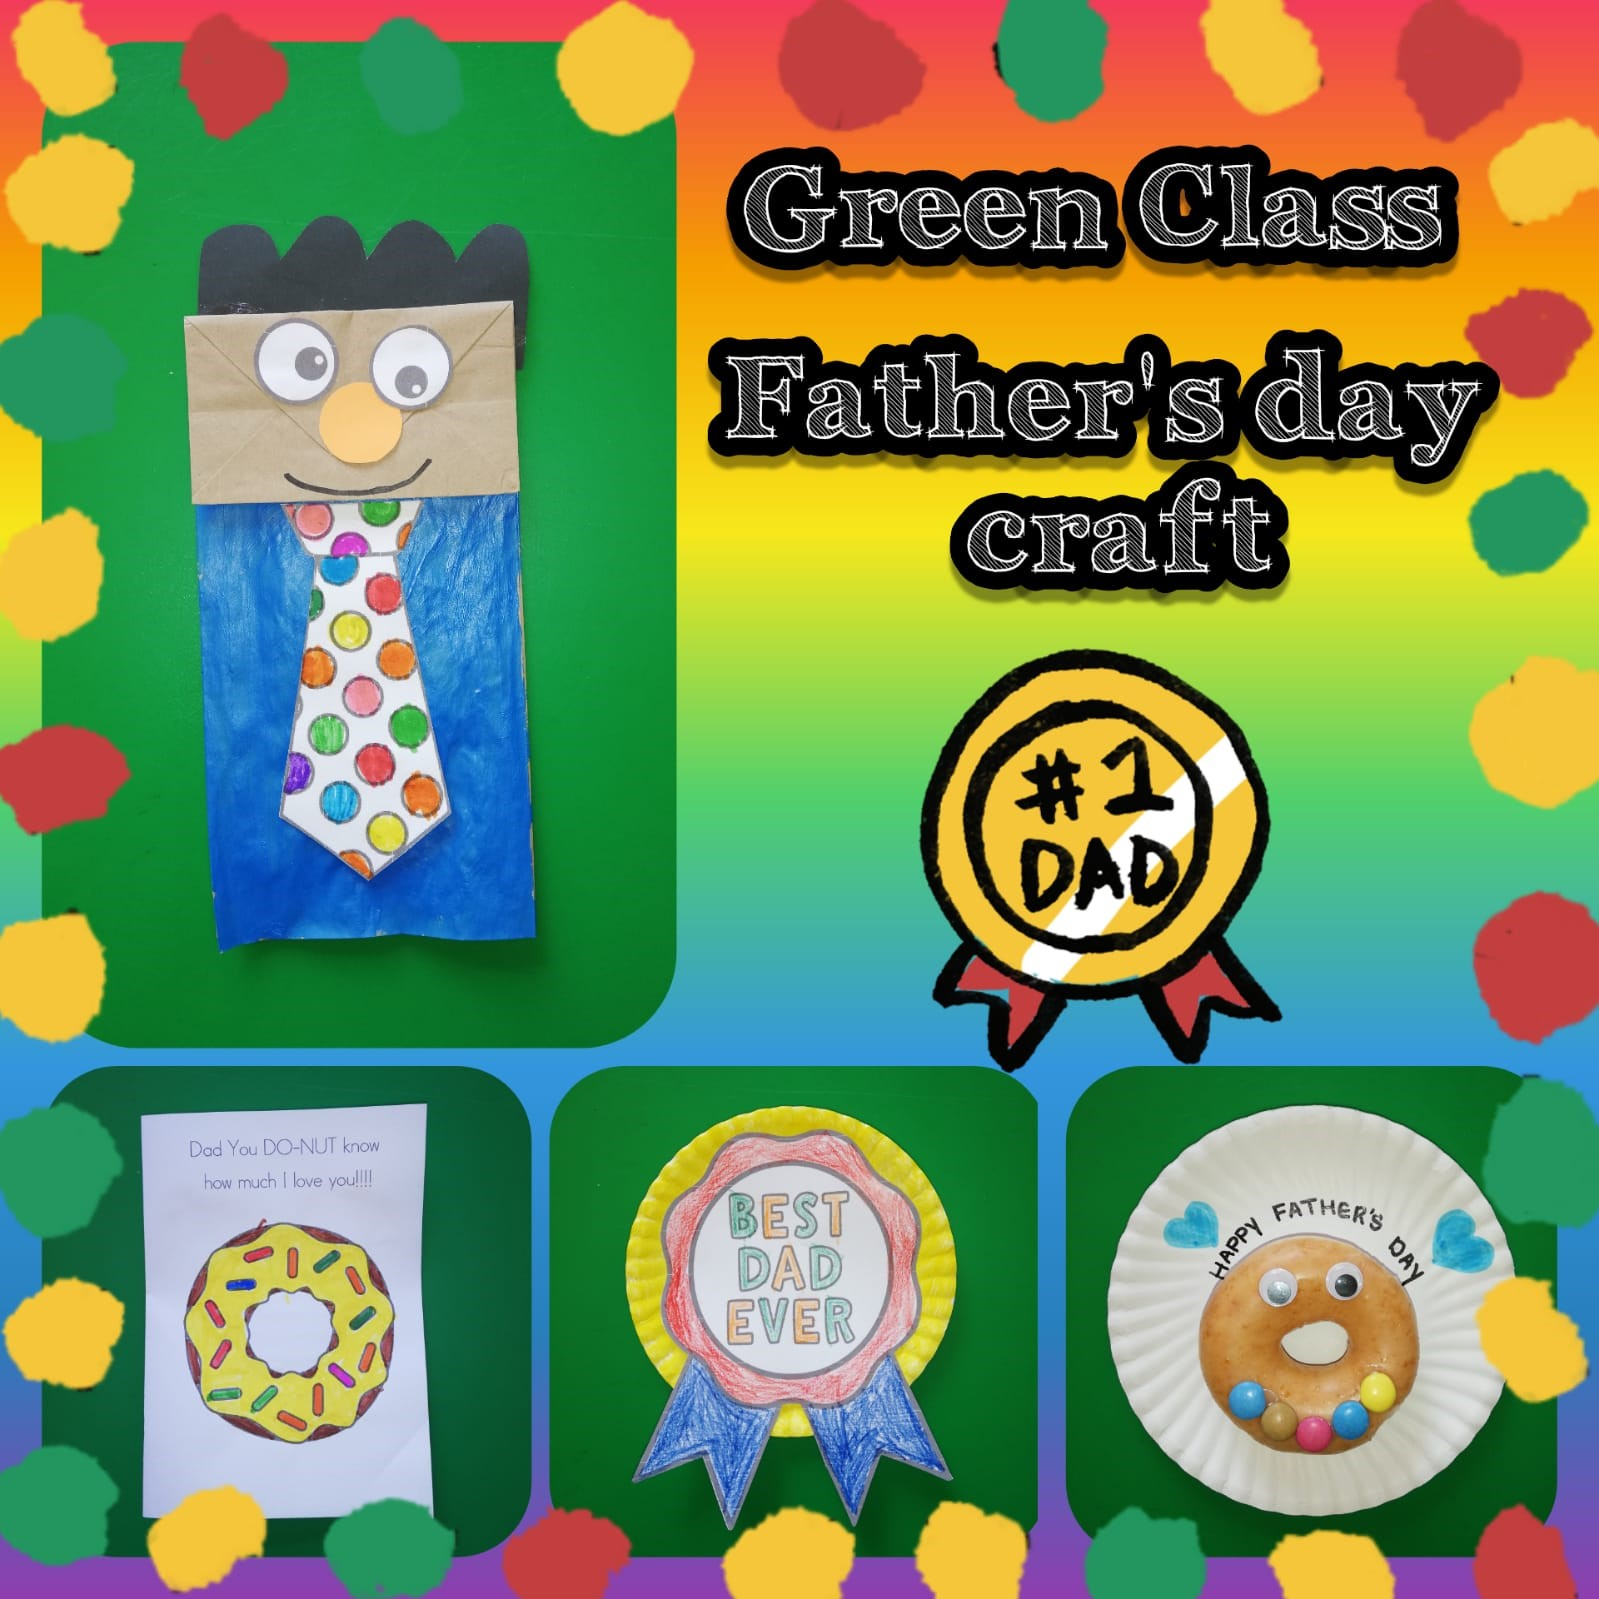 Green Class Fathers day